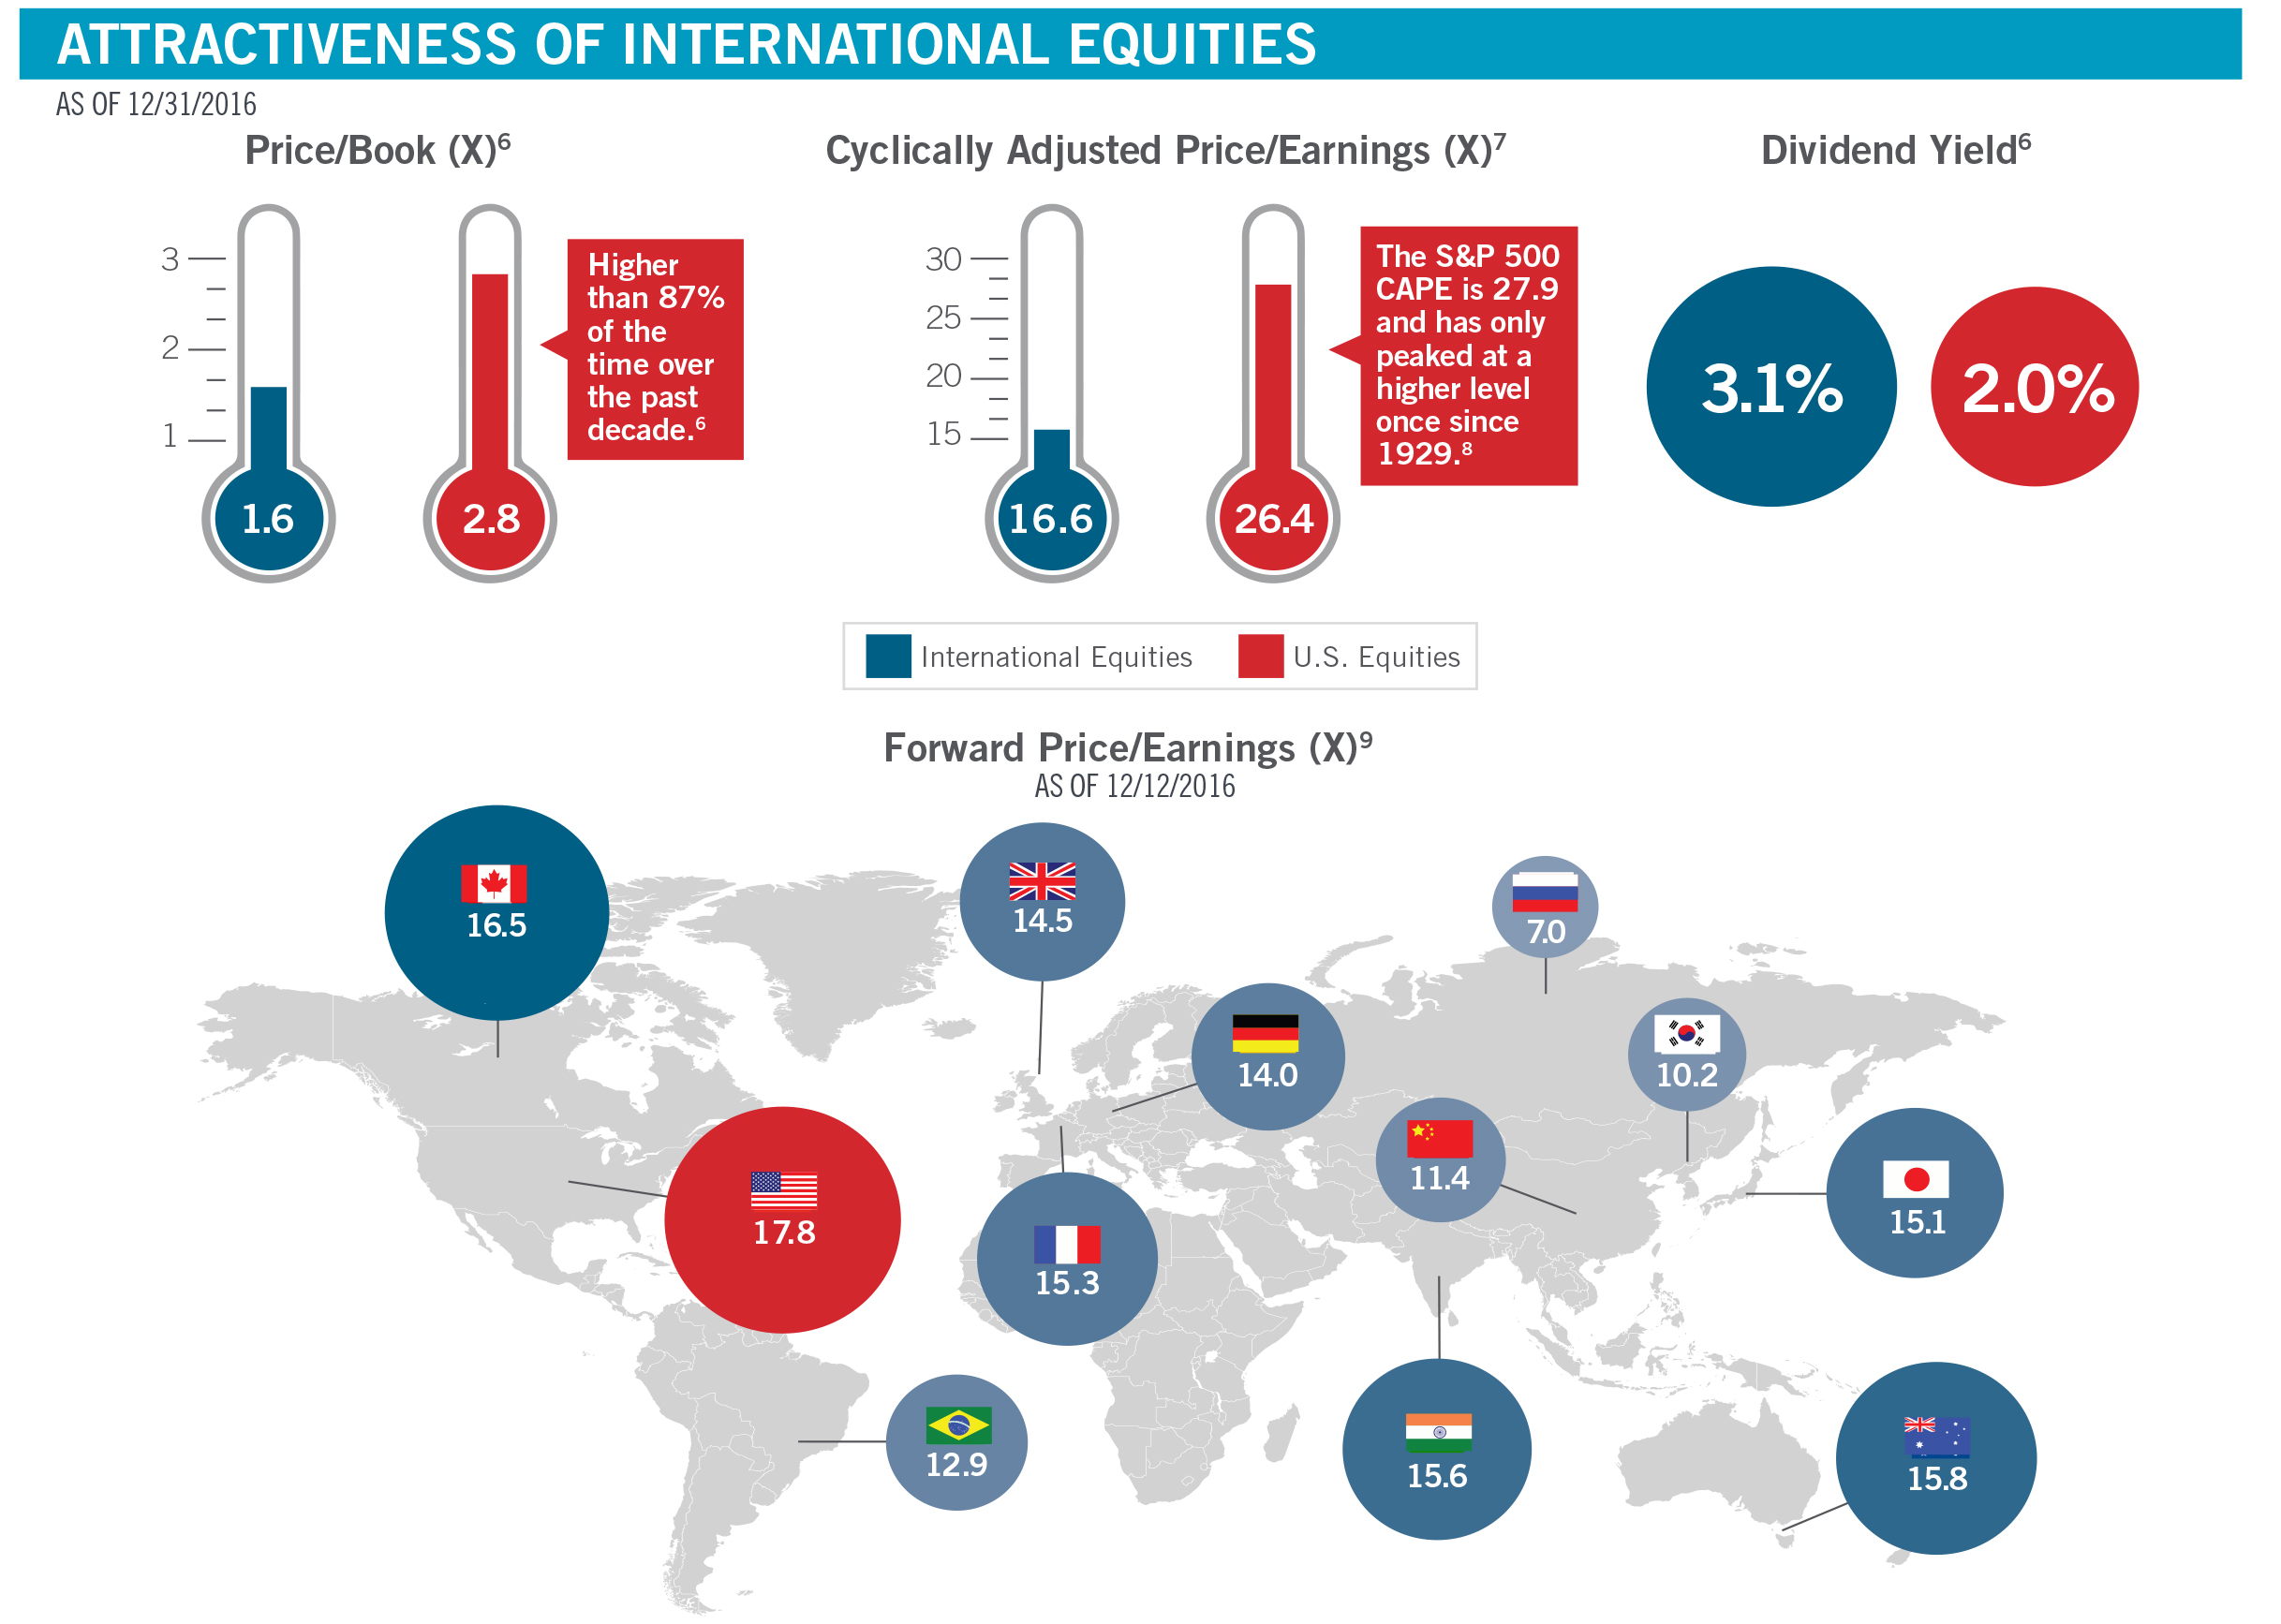 Attractiveness of International Equities